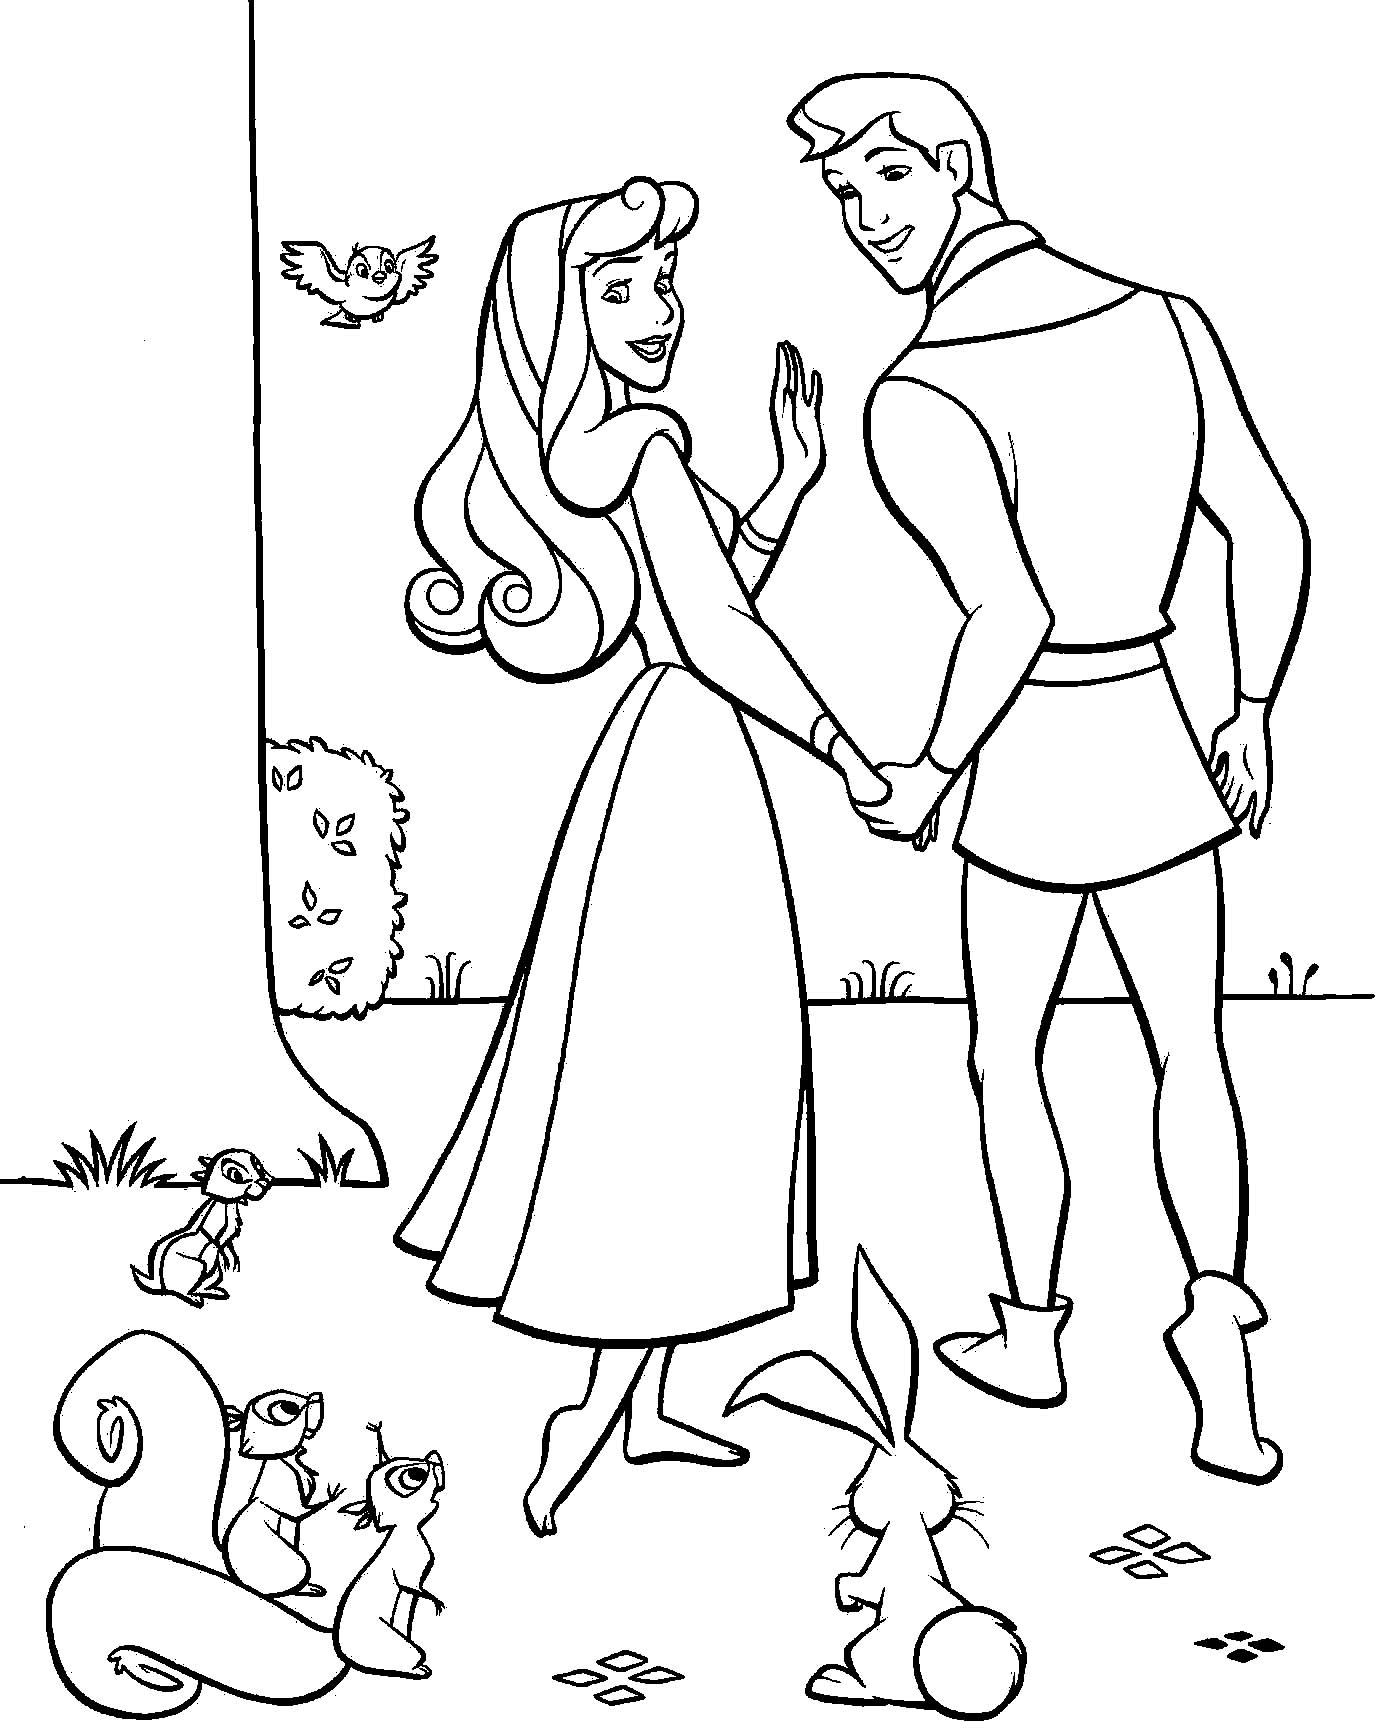 Sleeping Beauty Walked Two Coloring Pages For Kids F1h Printable Sleeping Beauty Colo Sleeping Beauty Coloring Pages Sleeping Beauty Coloring Pages For Kids